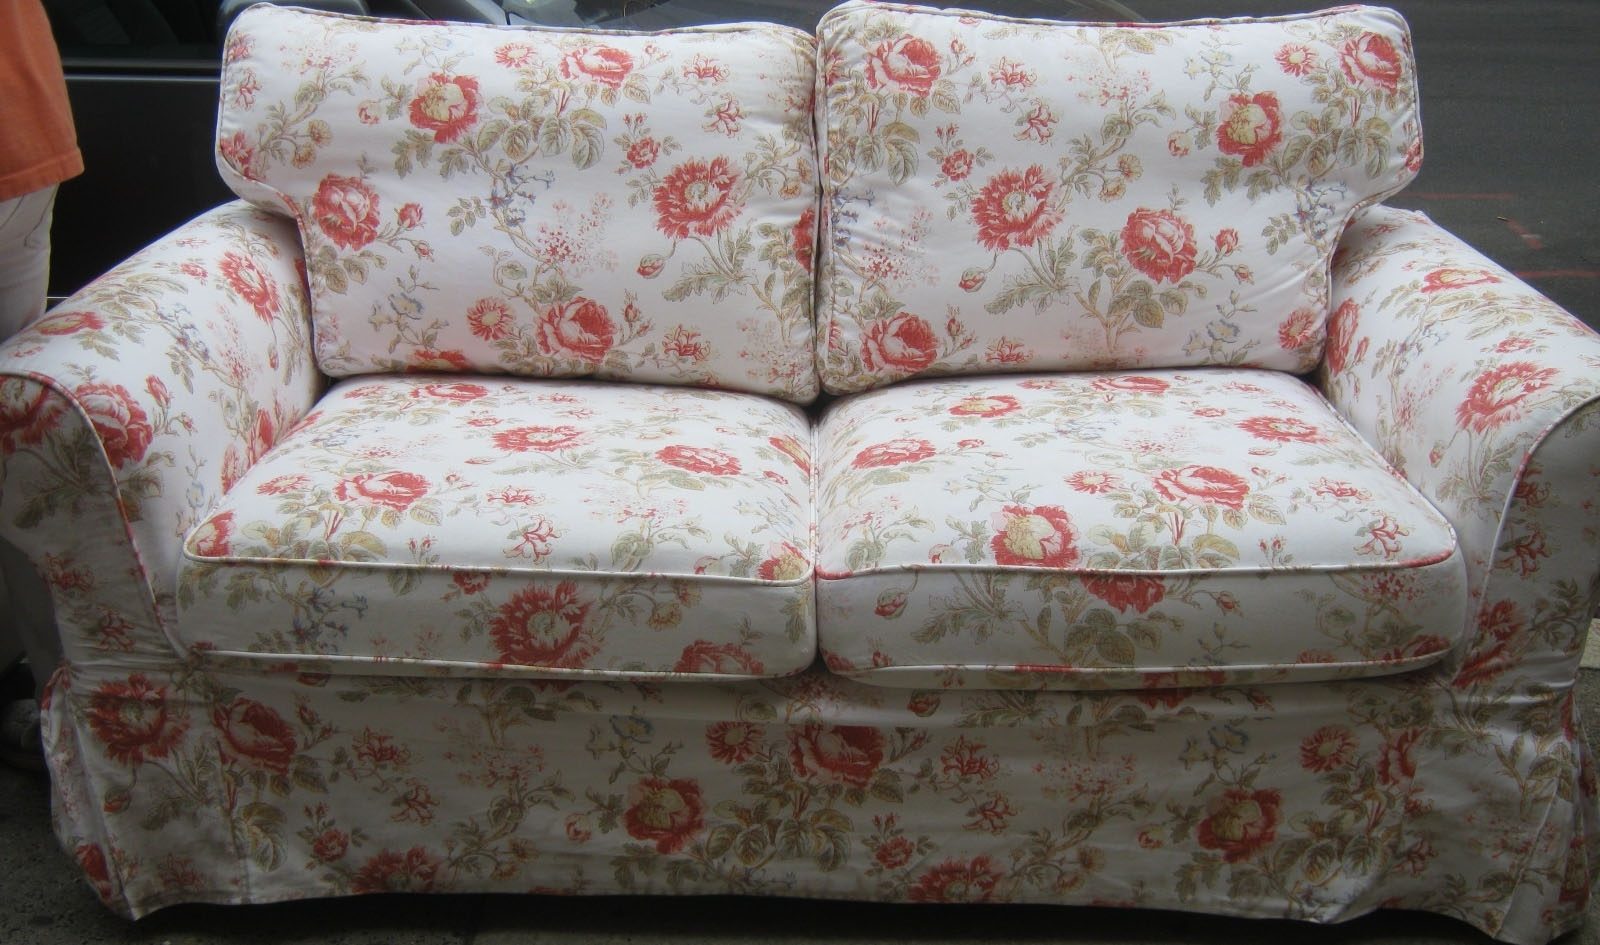 Recent Furniture : Floral Couch And Loveseat Used Furniture Gallery With Regard To Chintz Floral Sofas (View 12 of 15)